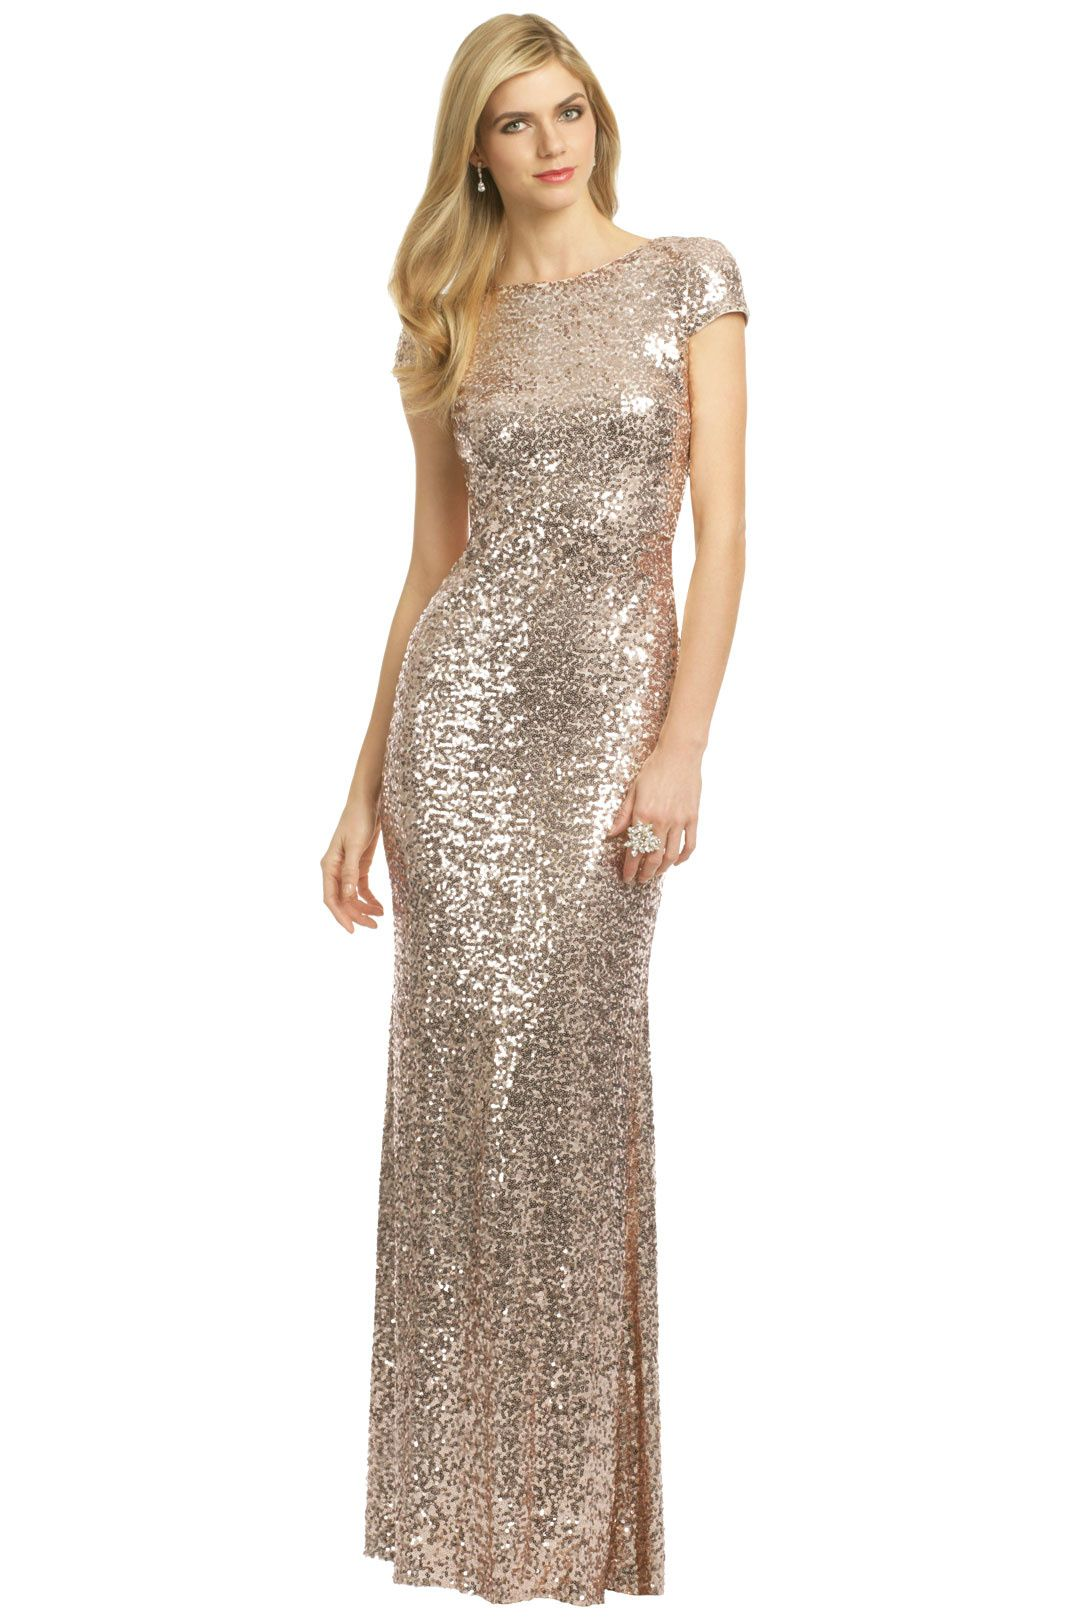 Rent award winner gown by badgley mischka for 70 80 only at rent award winner gown by badgley mischka for 70 80 only at rent the runway ombrellifo Choice Image